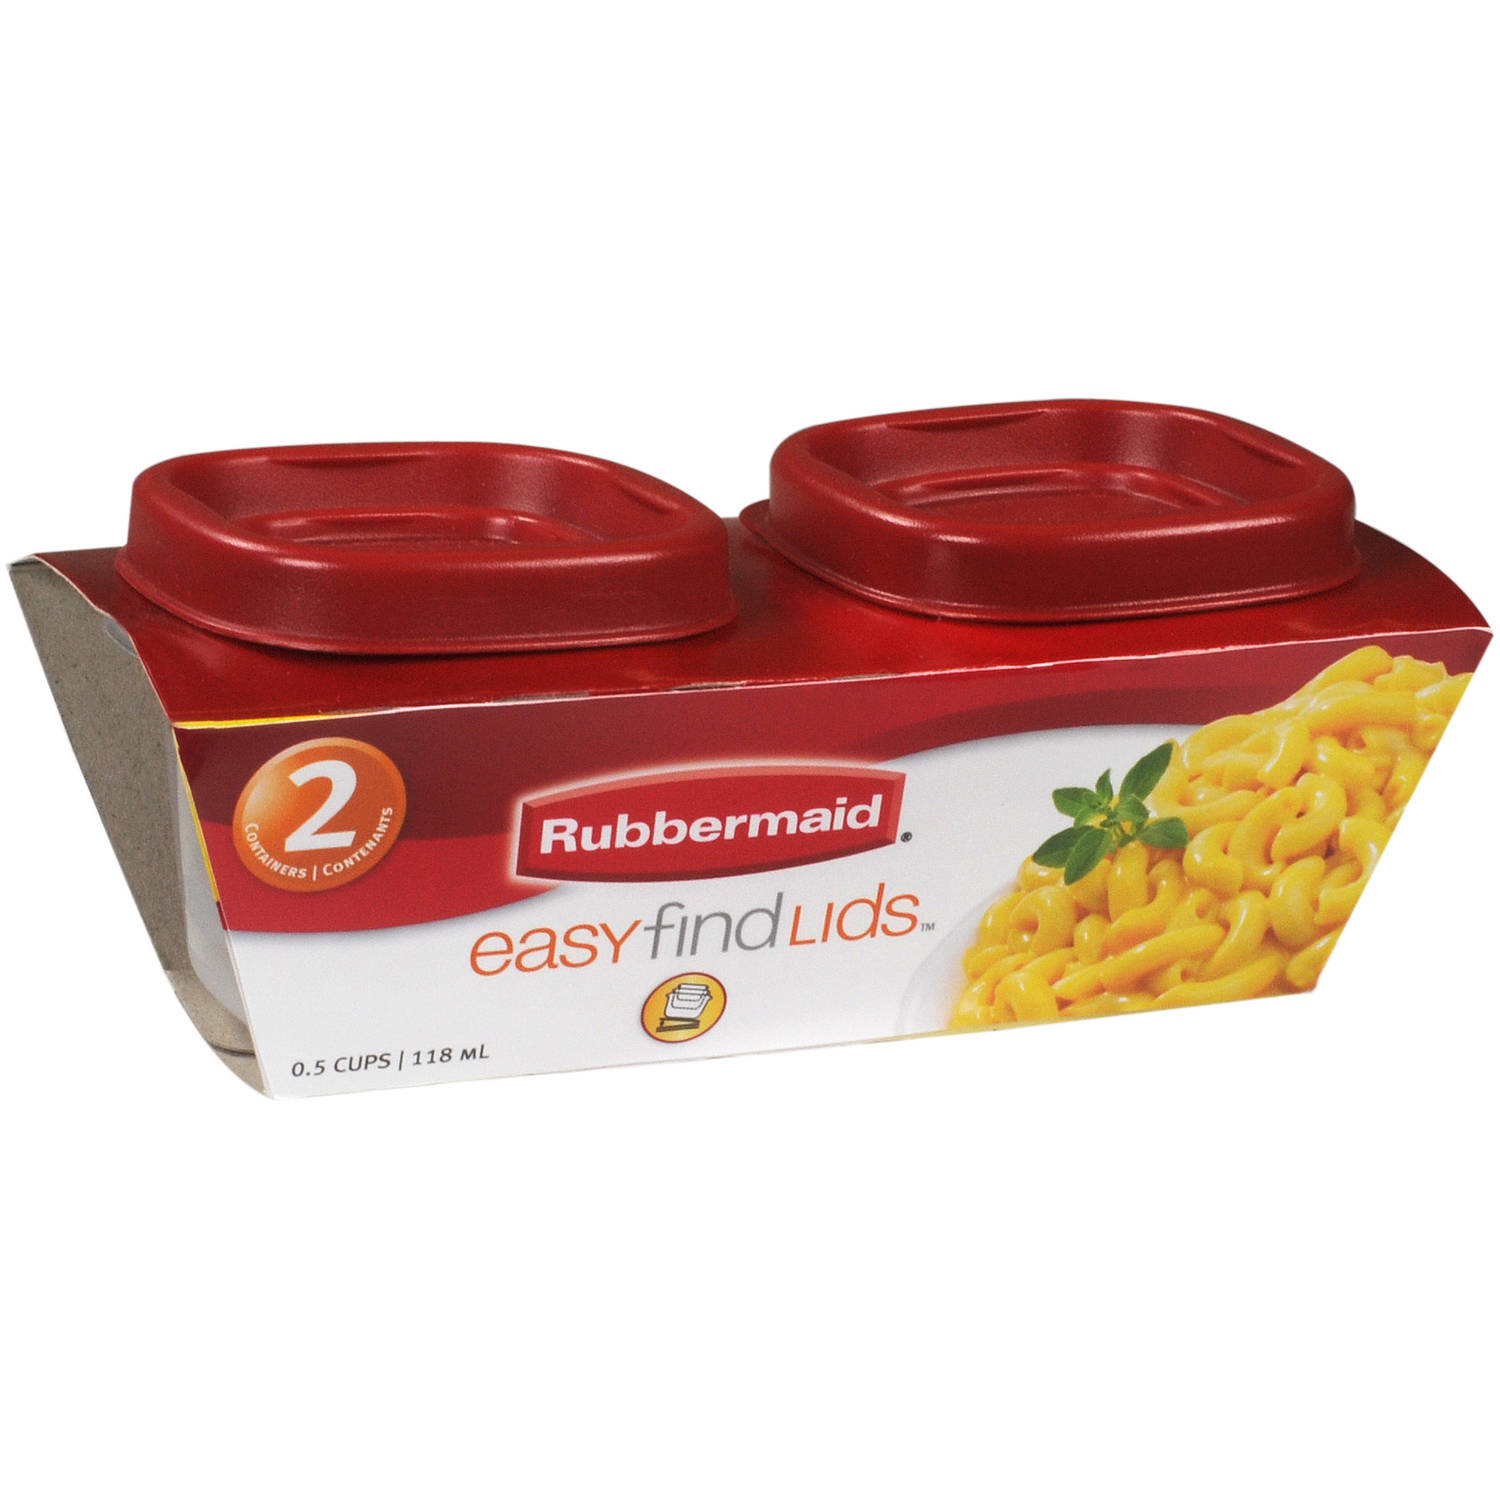 Rubbermaid Easy Find Lids Food Storage Containers, 0.5 cups, 2 count